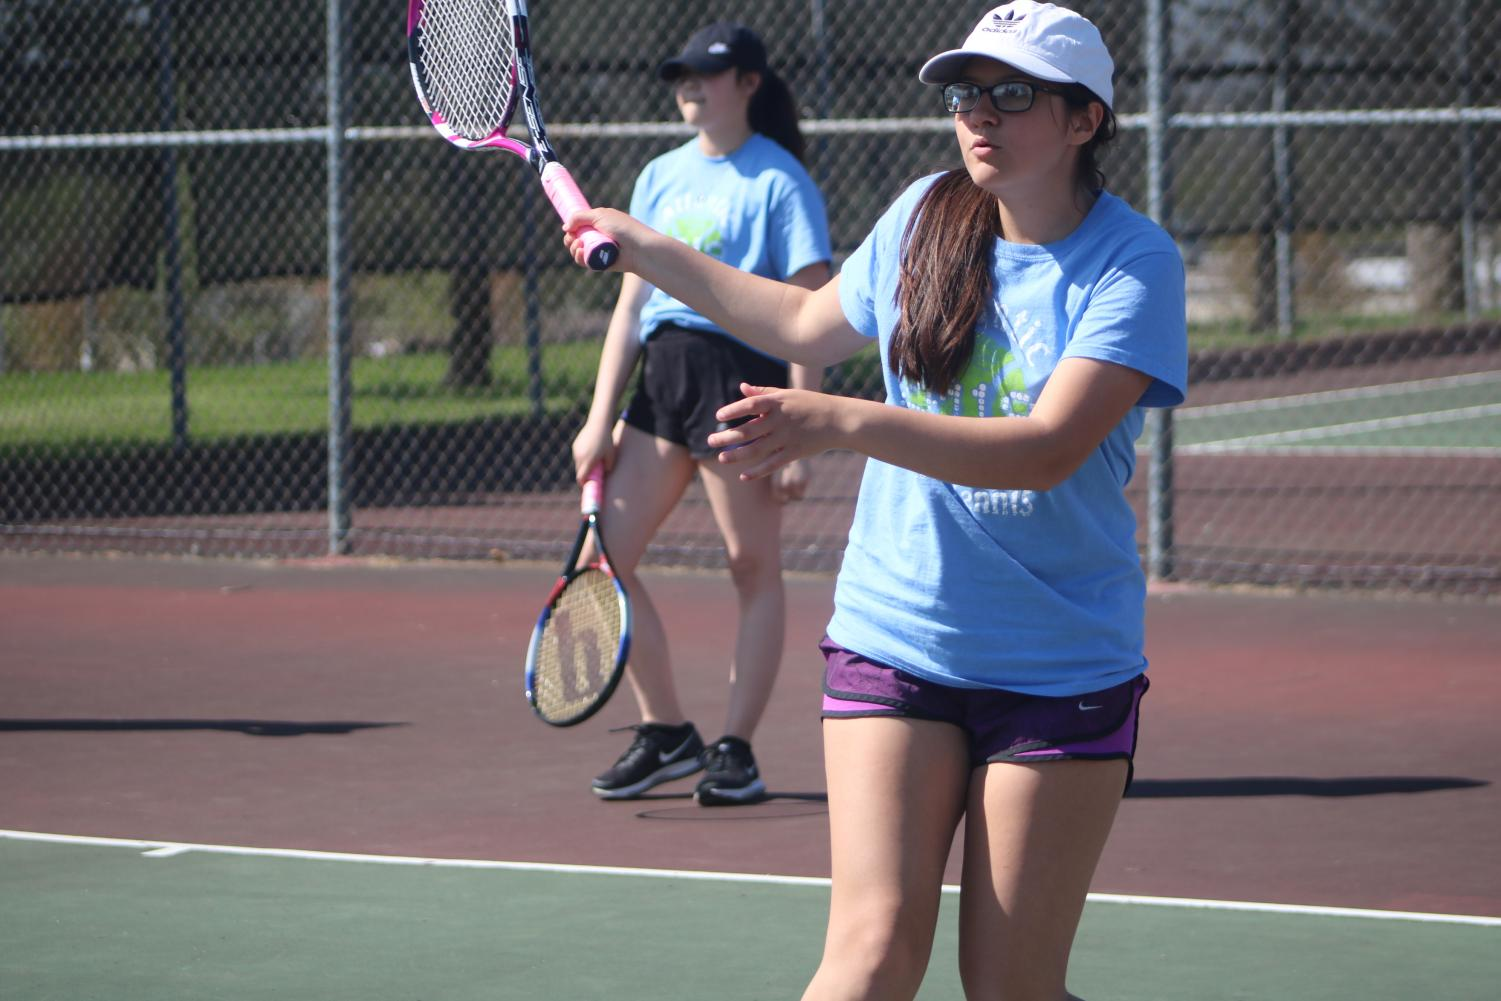 Sophomore Genevieve Martinez eyes her shot in warmups. Martinez won nine matches this season, including a double dip in the history-making win at Harlan.